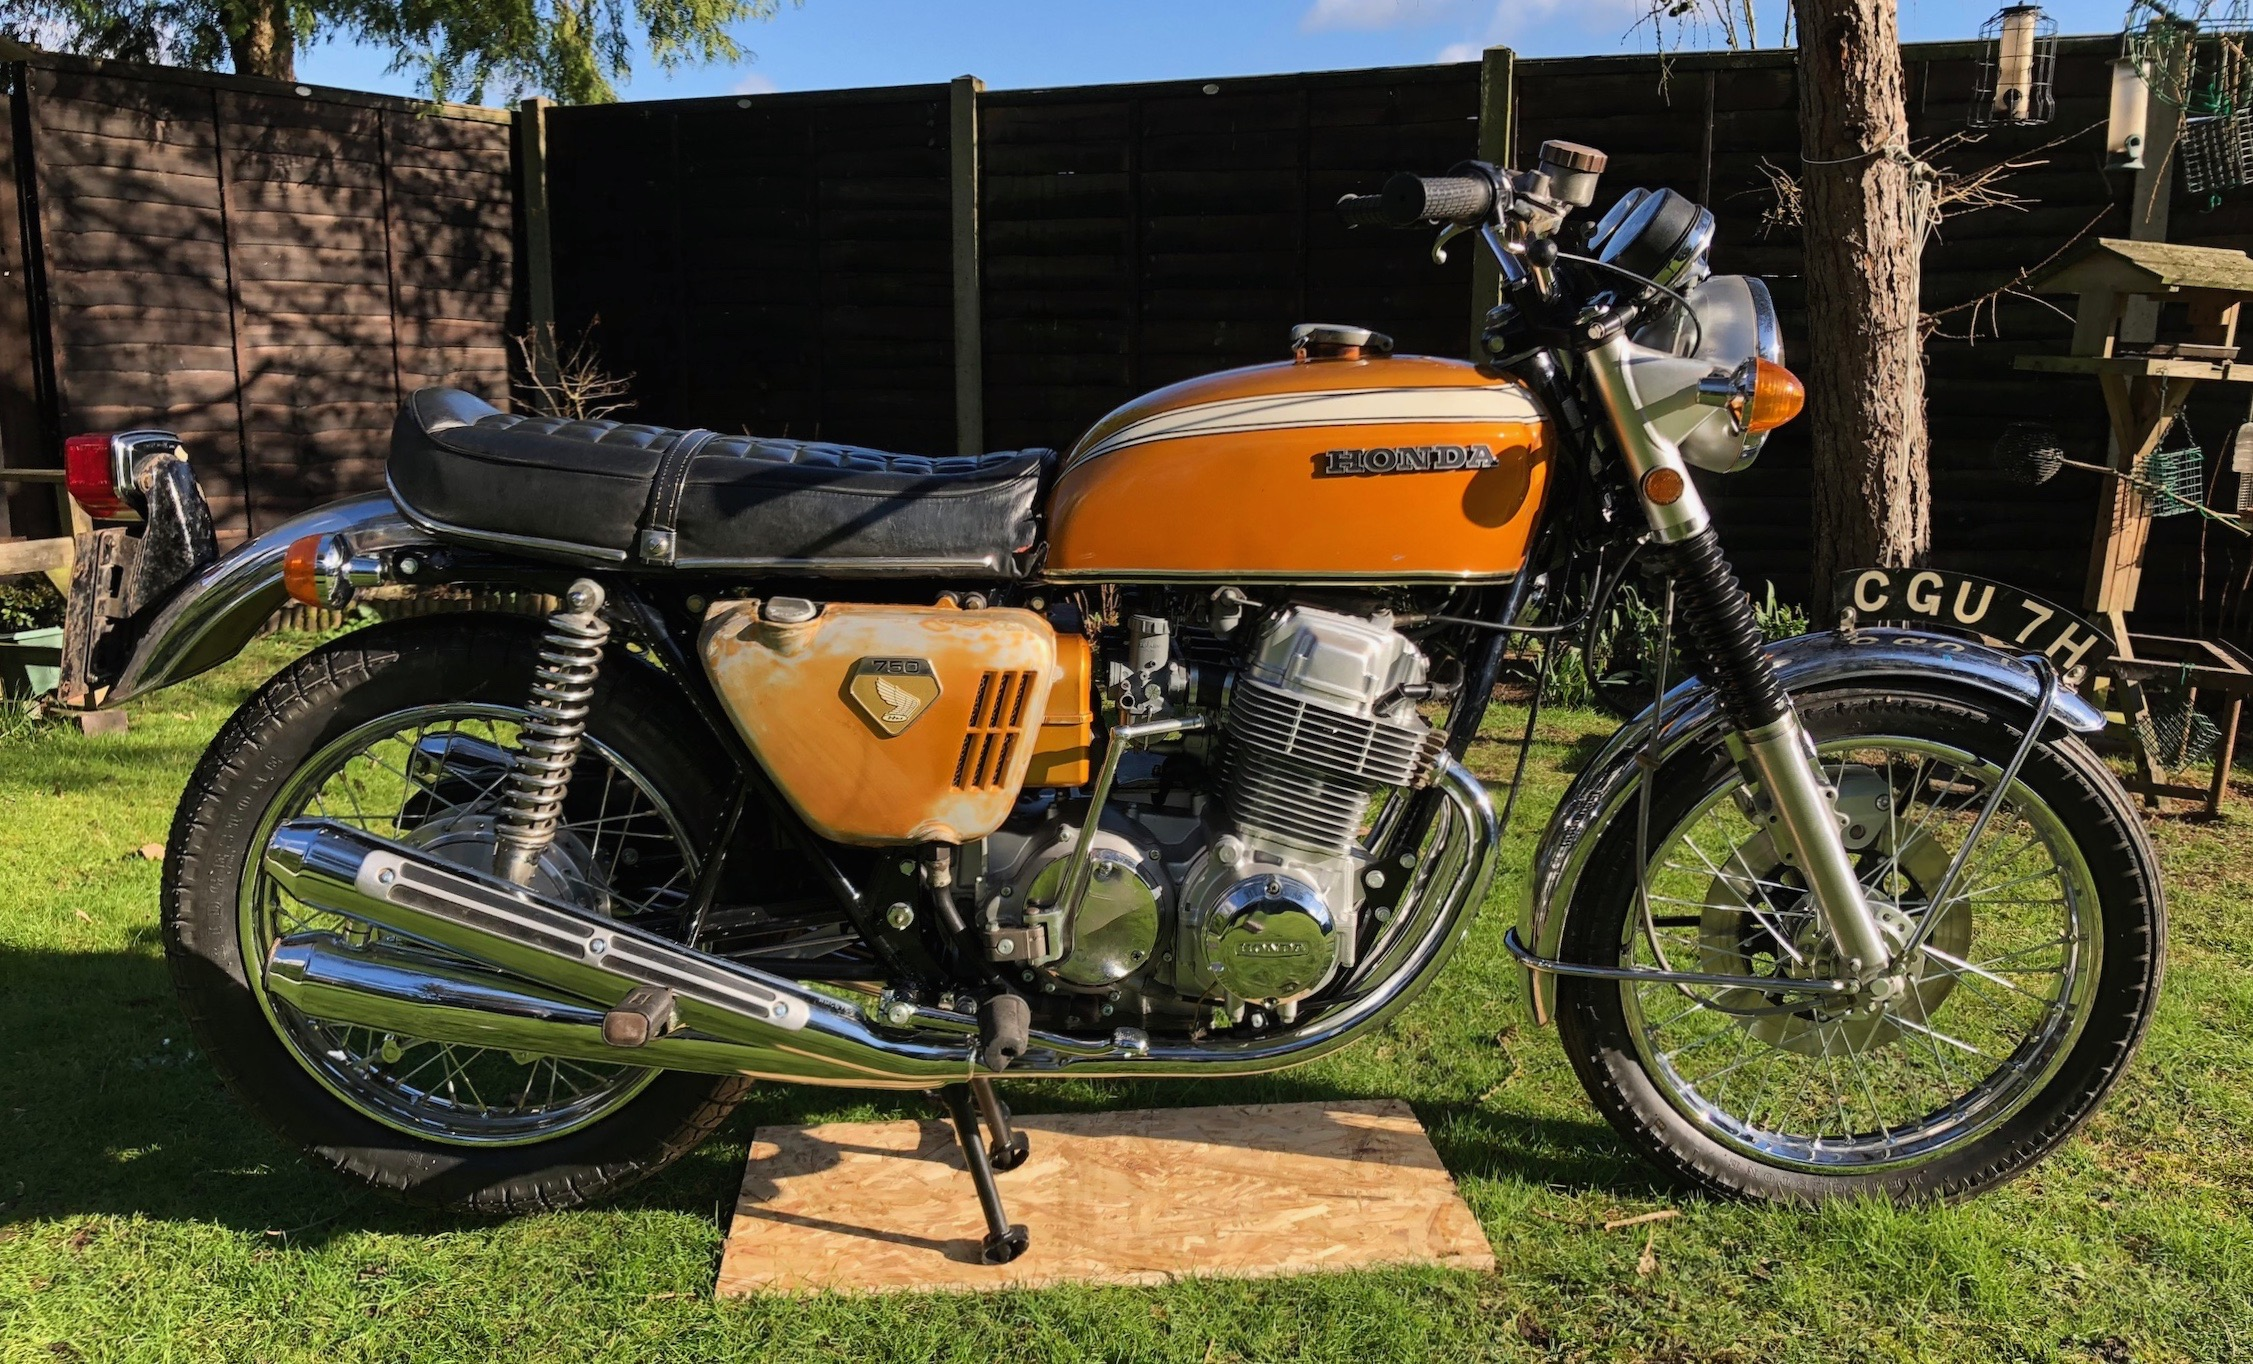 John Lennon's motorcycle sets auction record at H&H Classics | ClassicCars.com